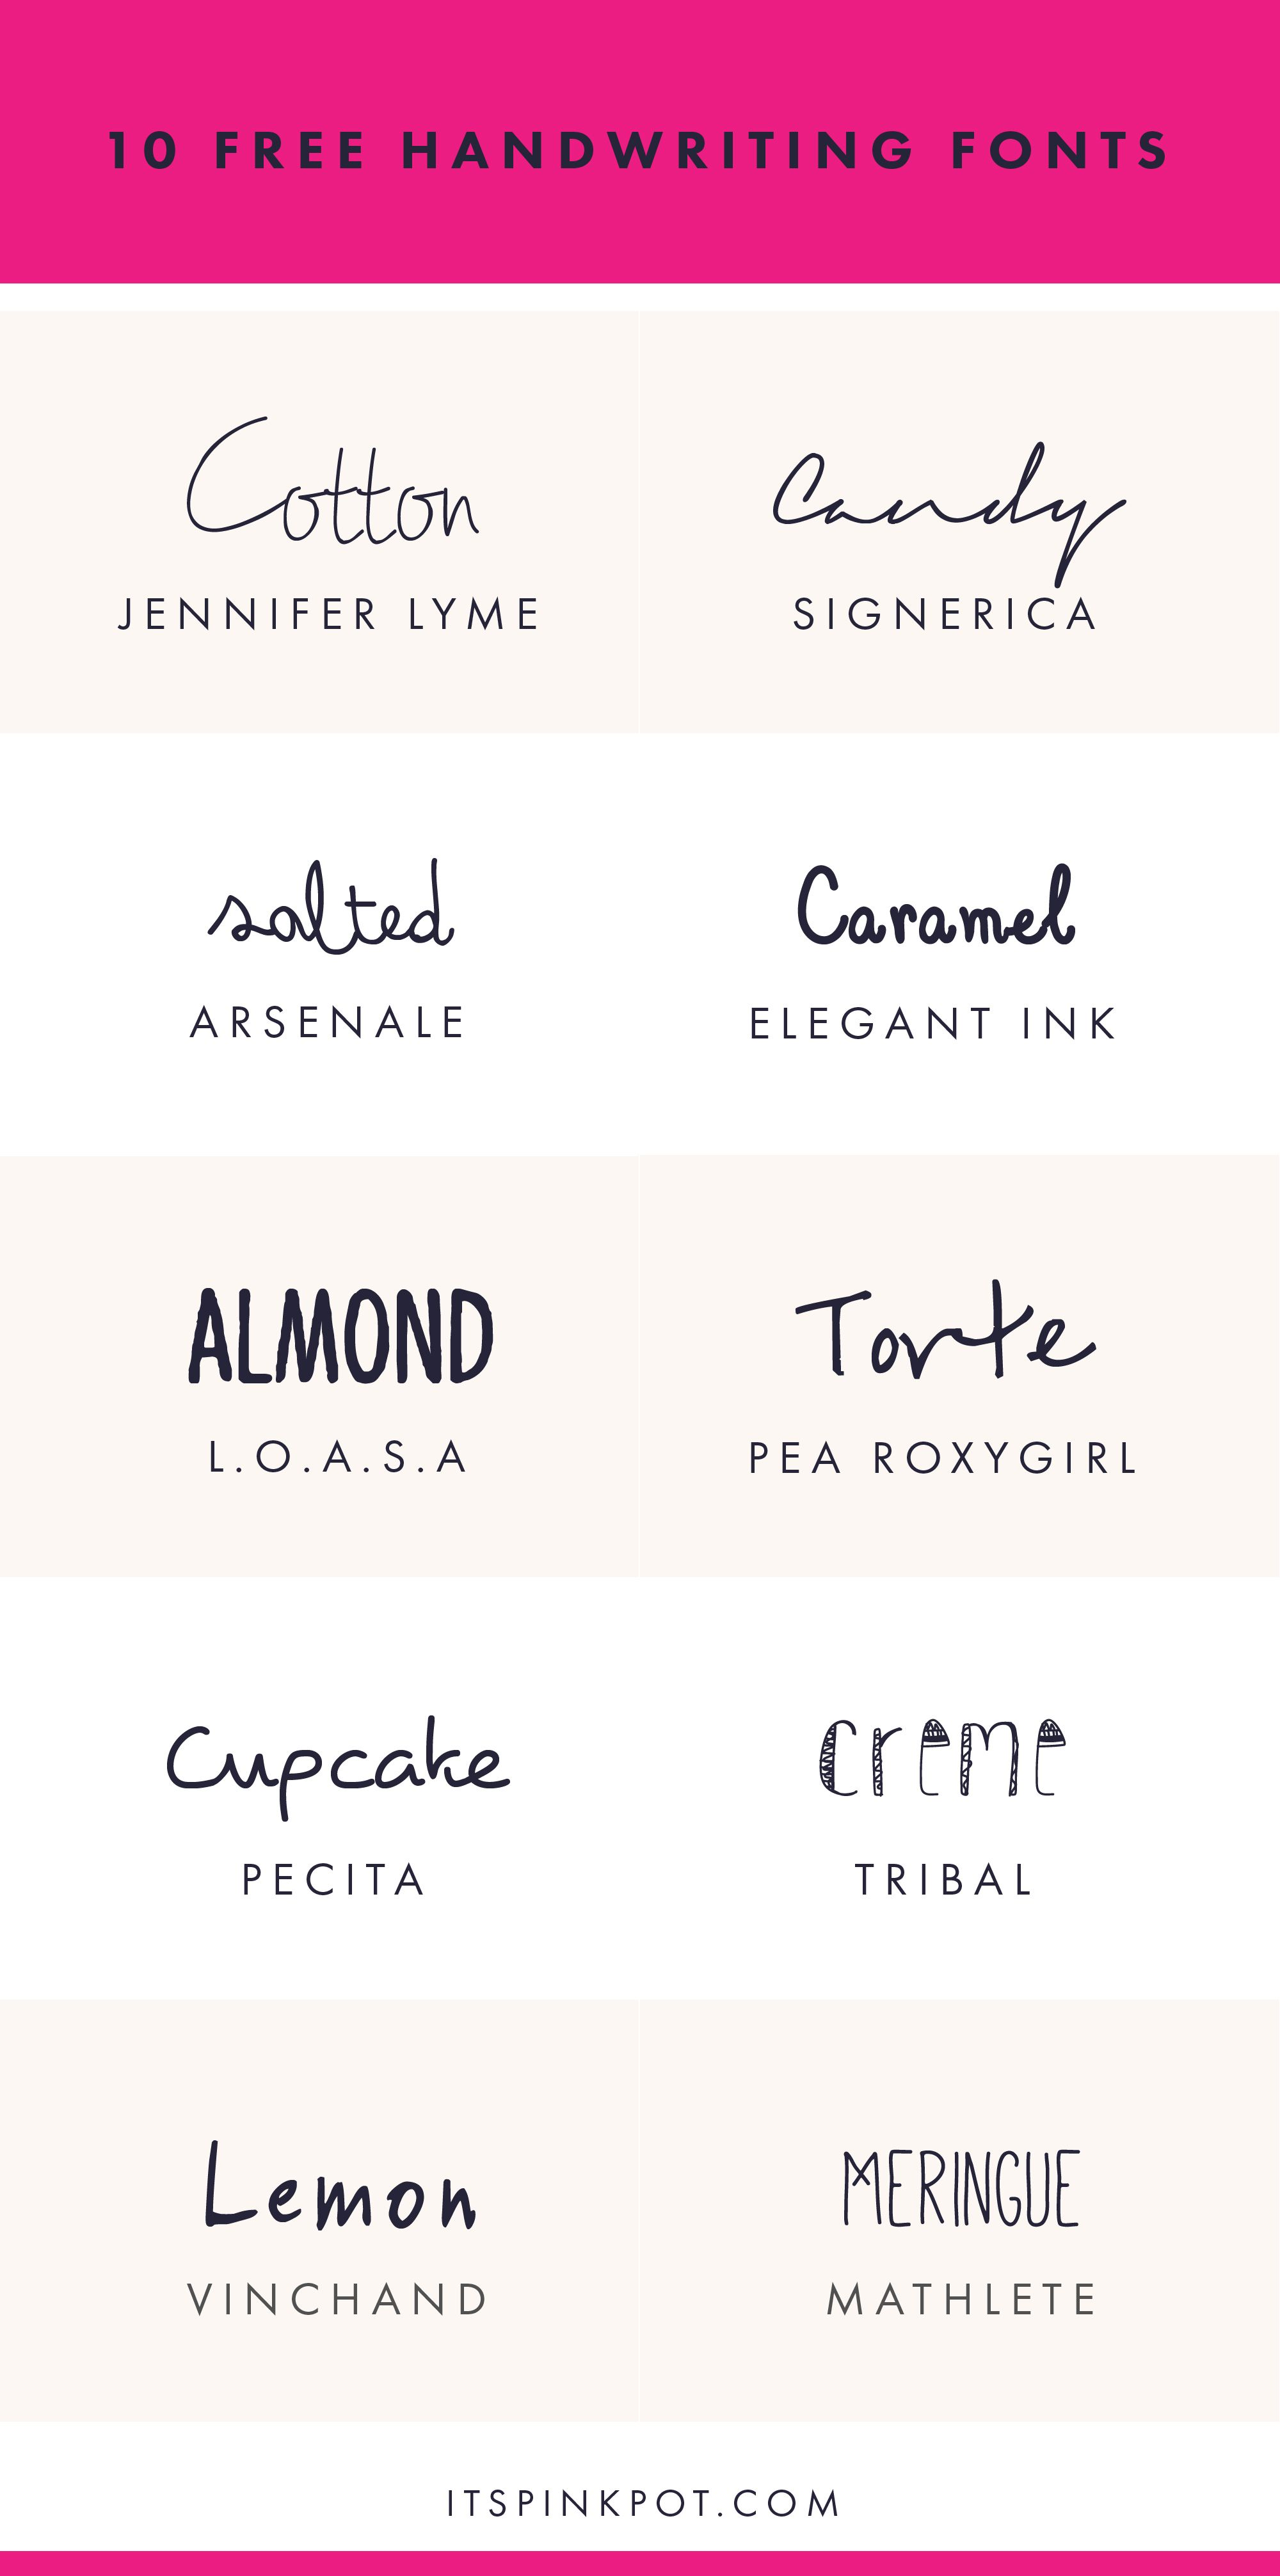 Check Out These 10 Gorgeous Handwriting Fonts They Are All FREE Too So Enjoy You Will Love